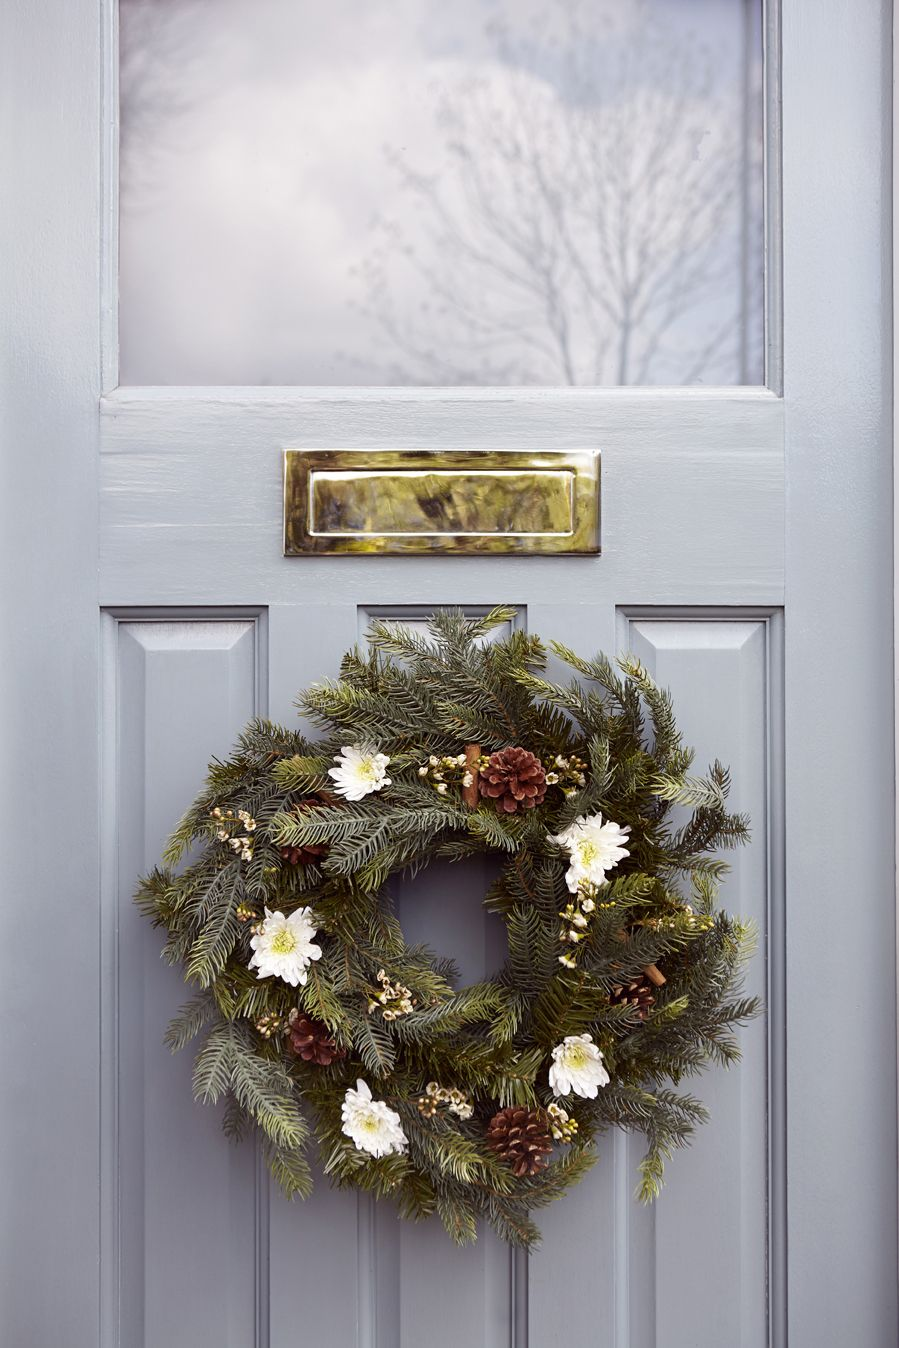 Christmas Want To Hang A Wreath On Your Front Door But Not Sure How To Do It Without Damaging The Do Christmas Wreaths Christmas Decorations Christmas Is Over